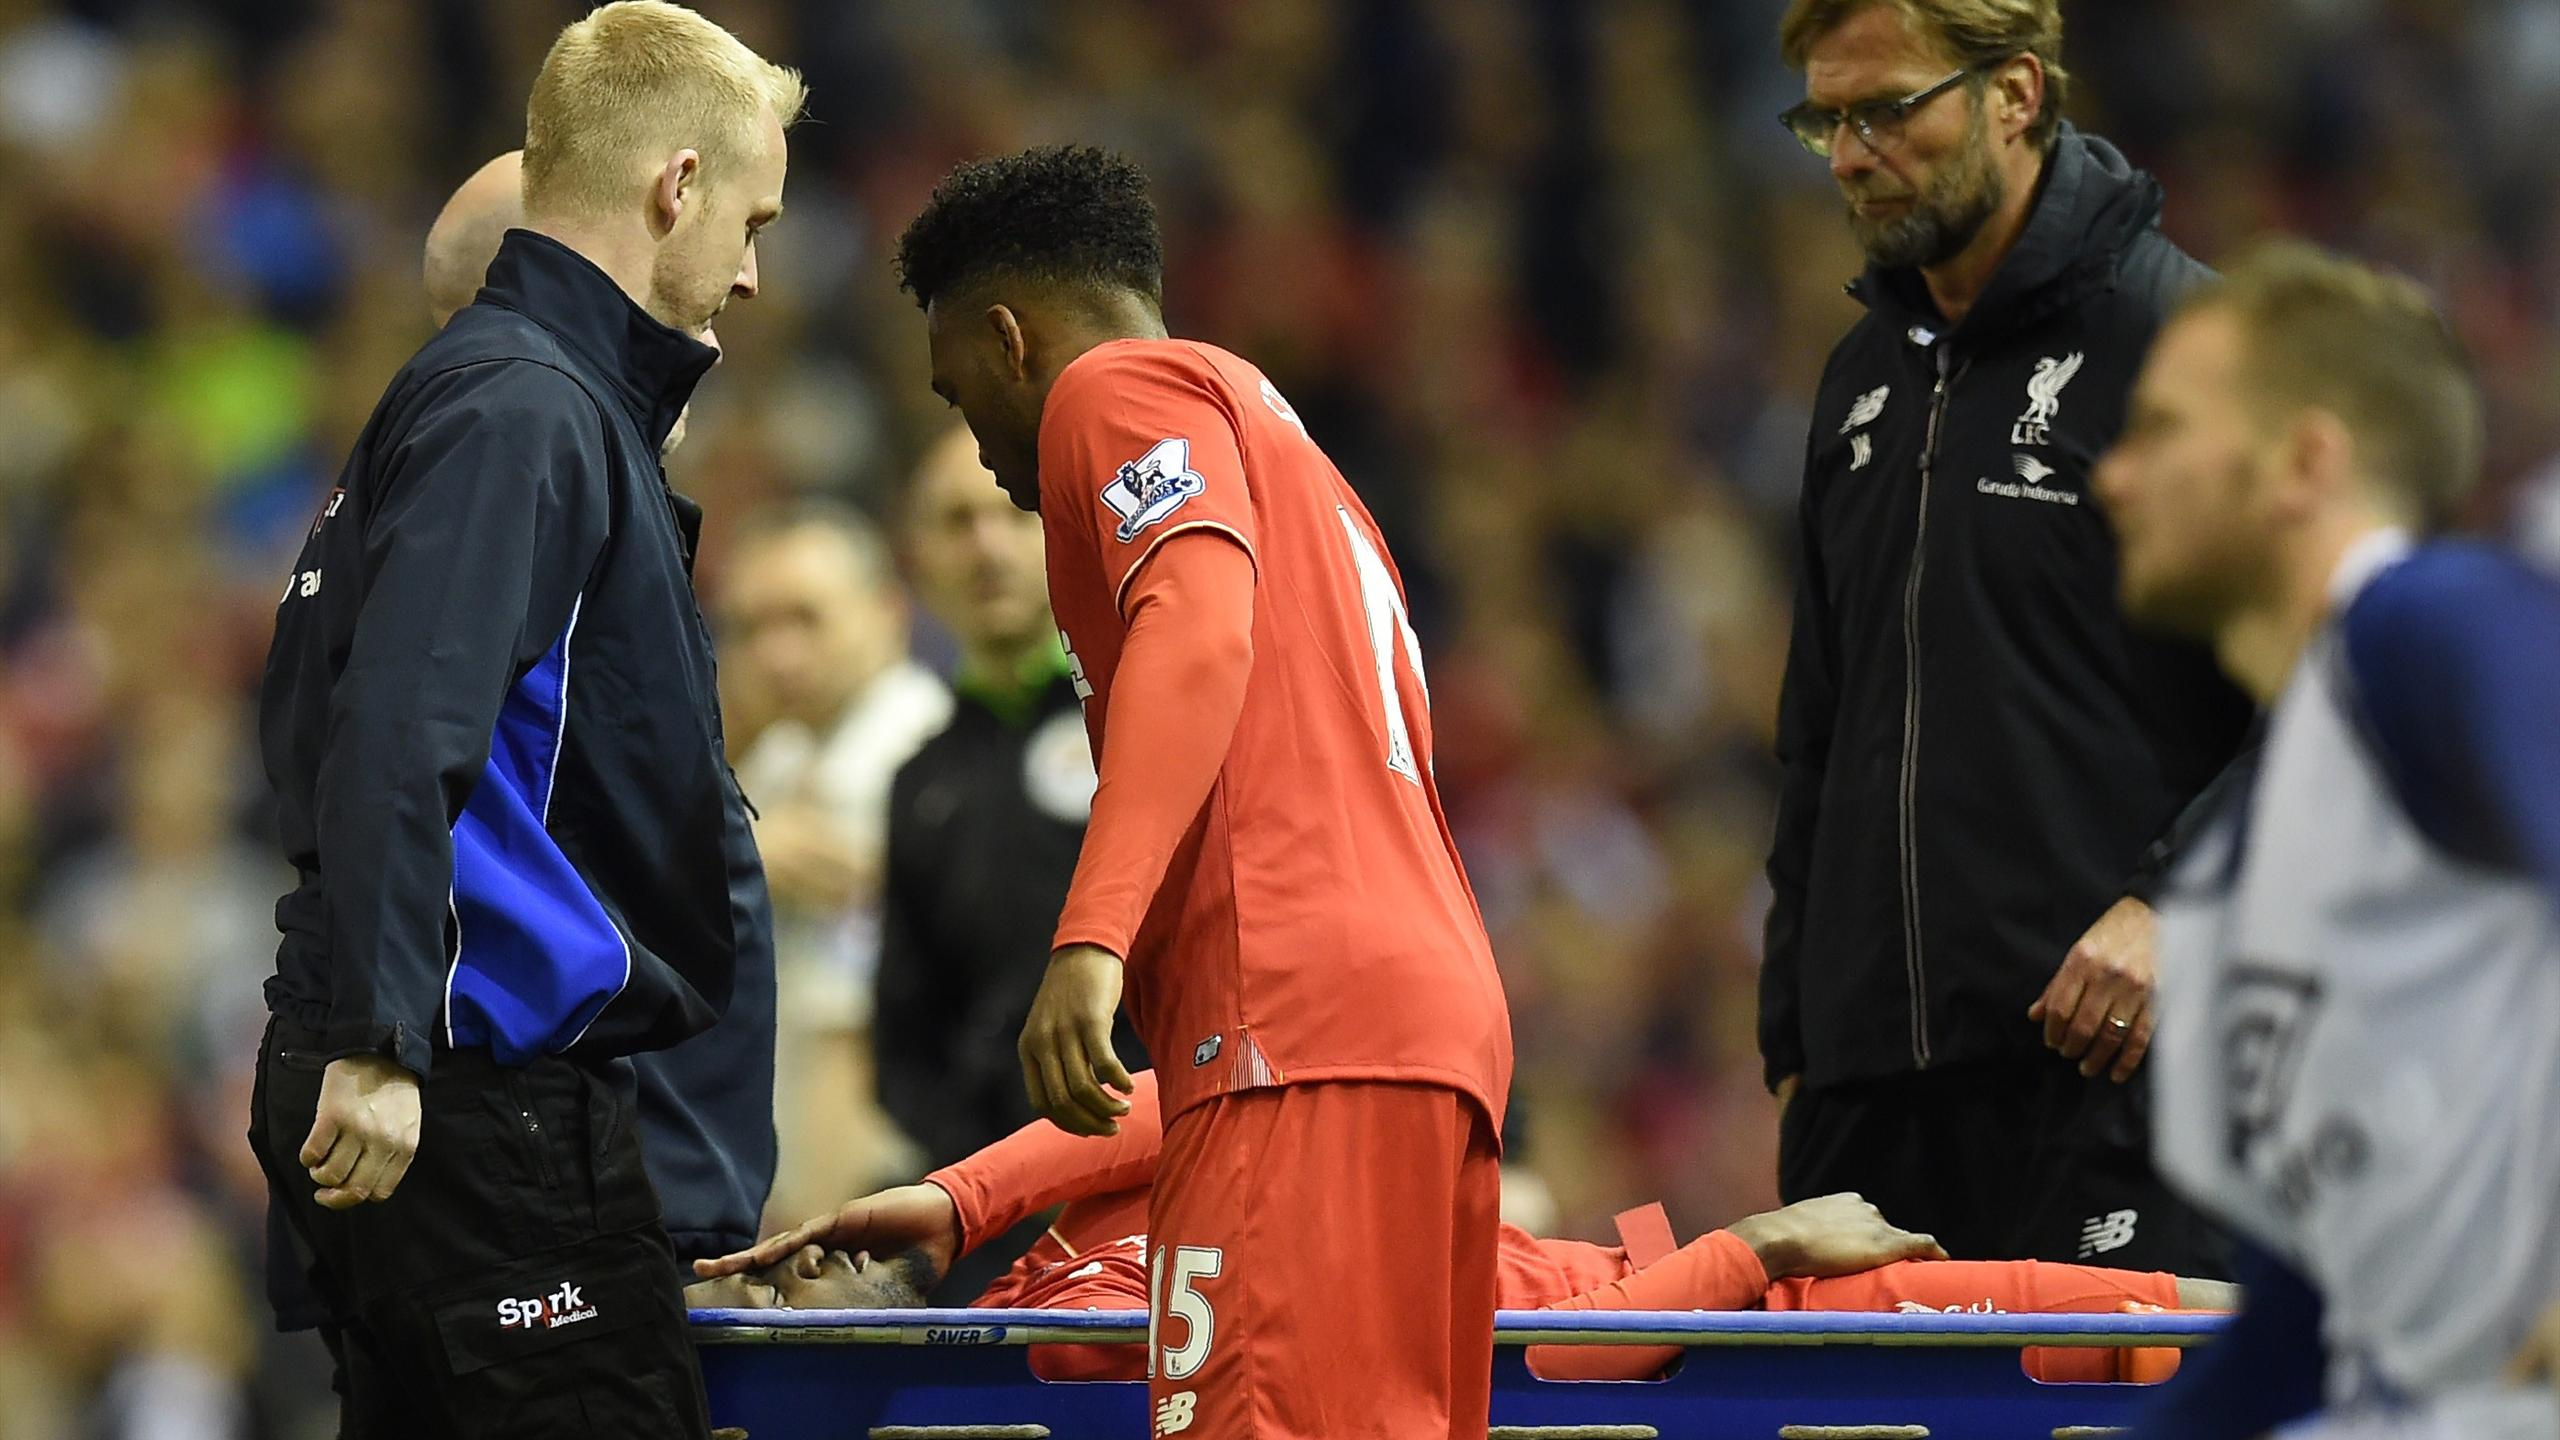 Liverpool's English striker Daniel Sturridge (C) and Liverpool's German manager Jurgen Klopp (R) look at Liverpool's Belgian striker Divock Origi as he is stretchered off during the English Premier League football match between Liverpool and Everton